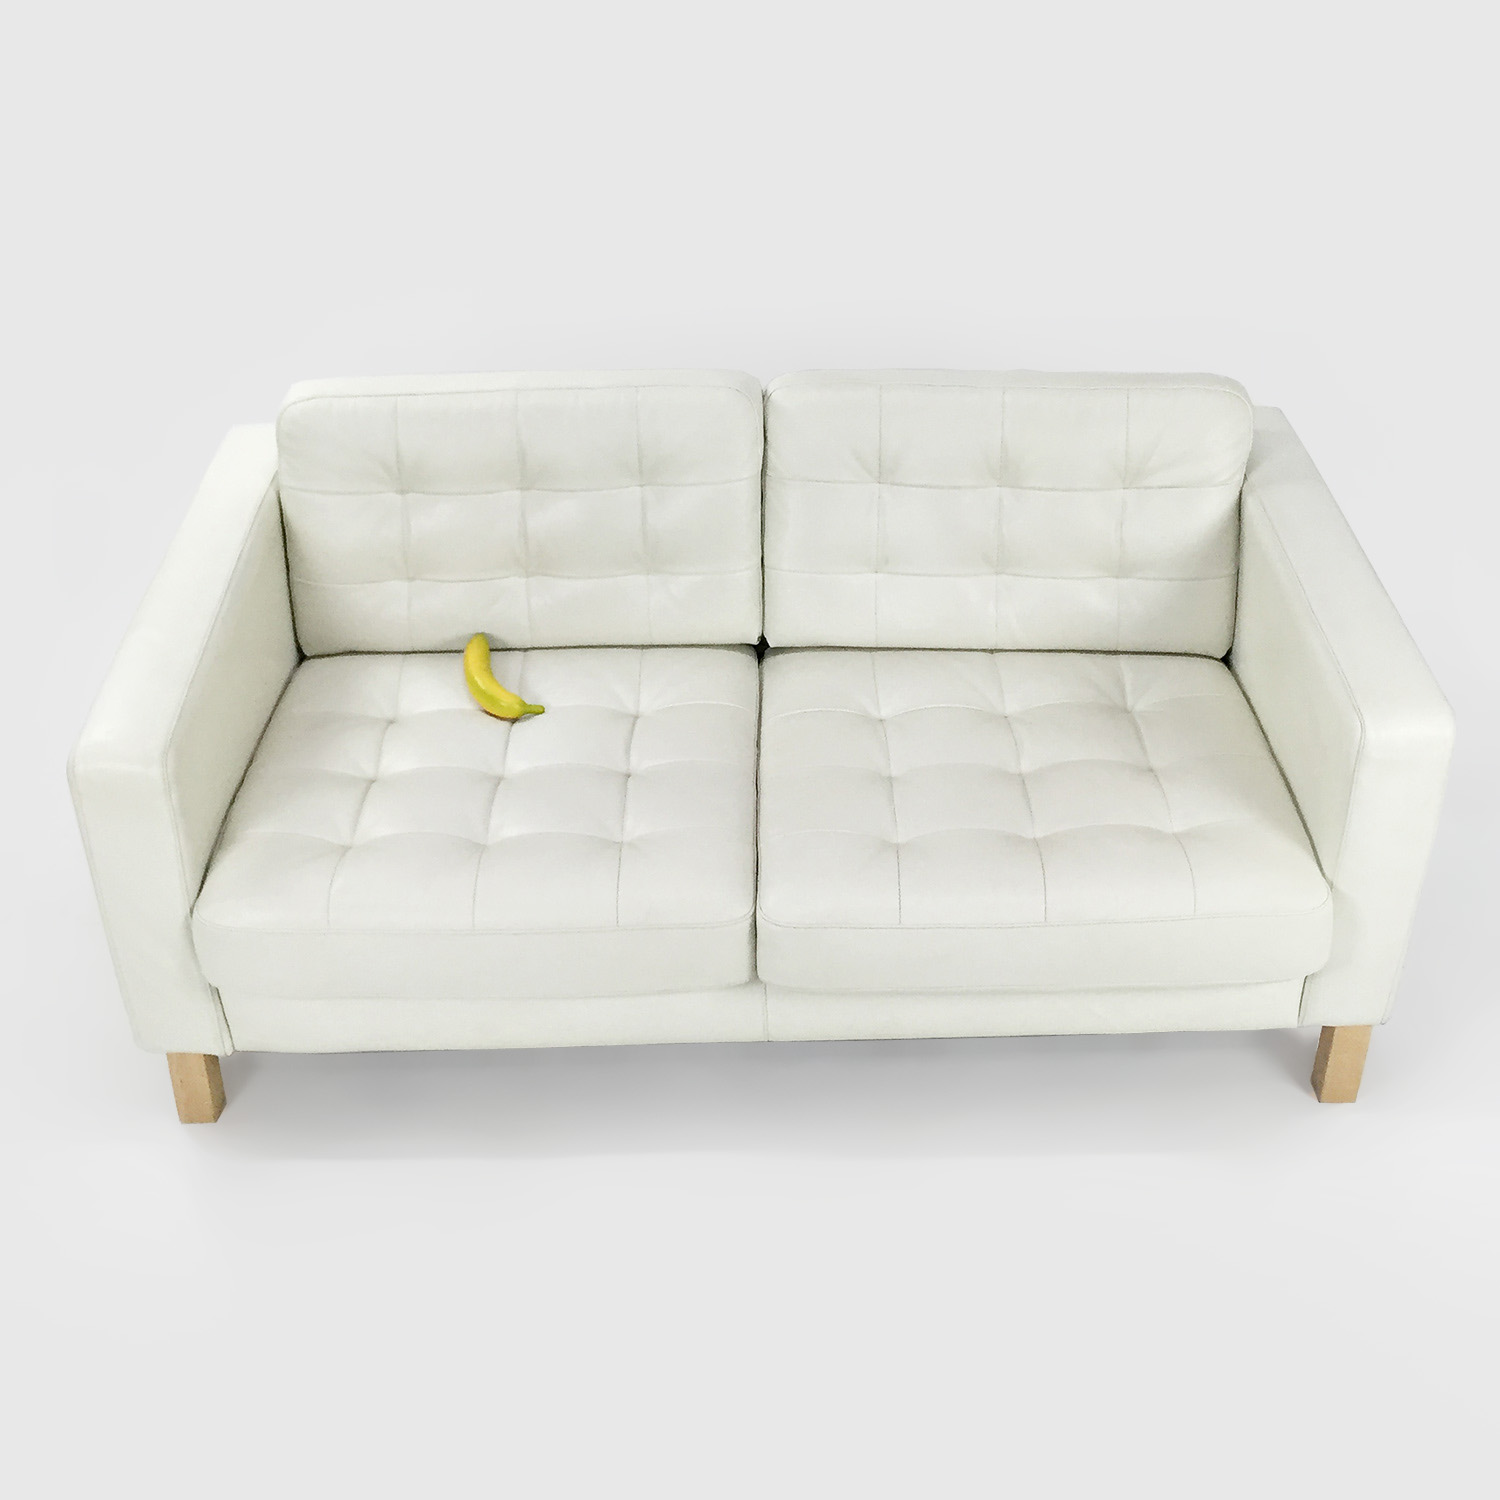 50 Off Ikea White Leather Couch Sofas